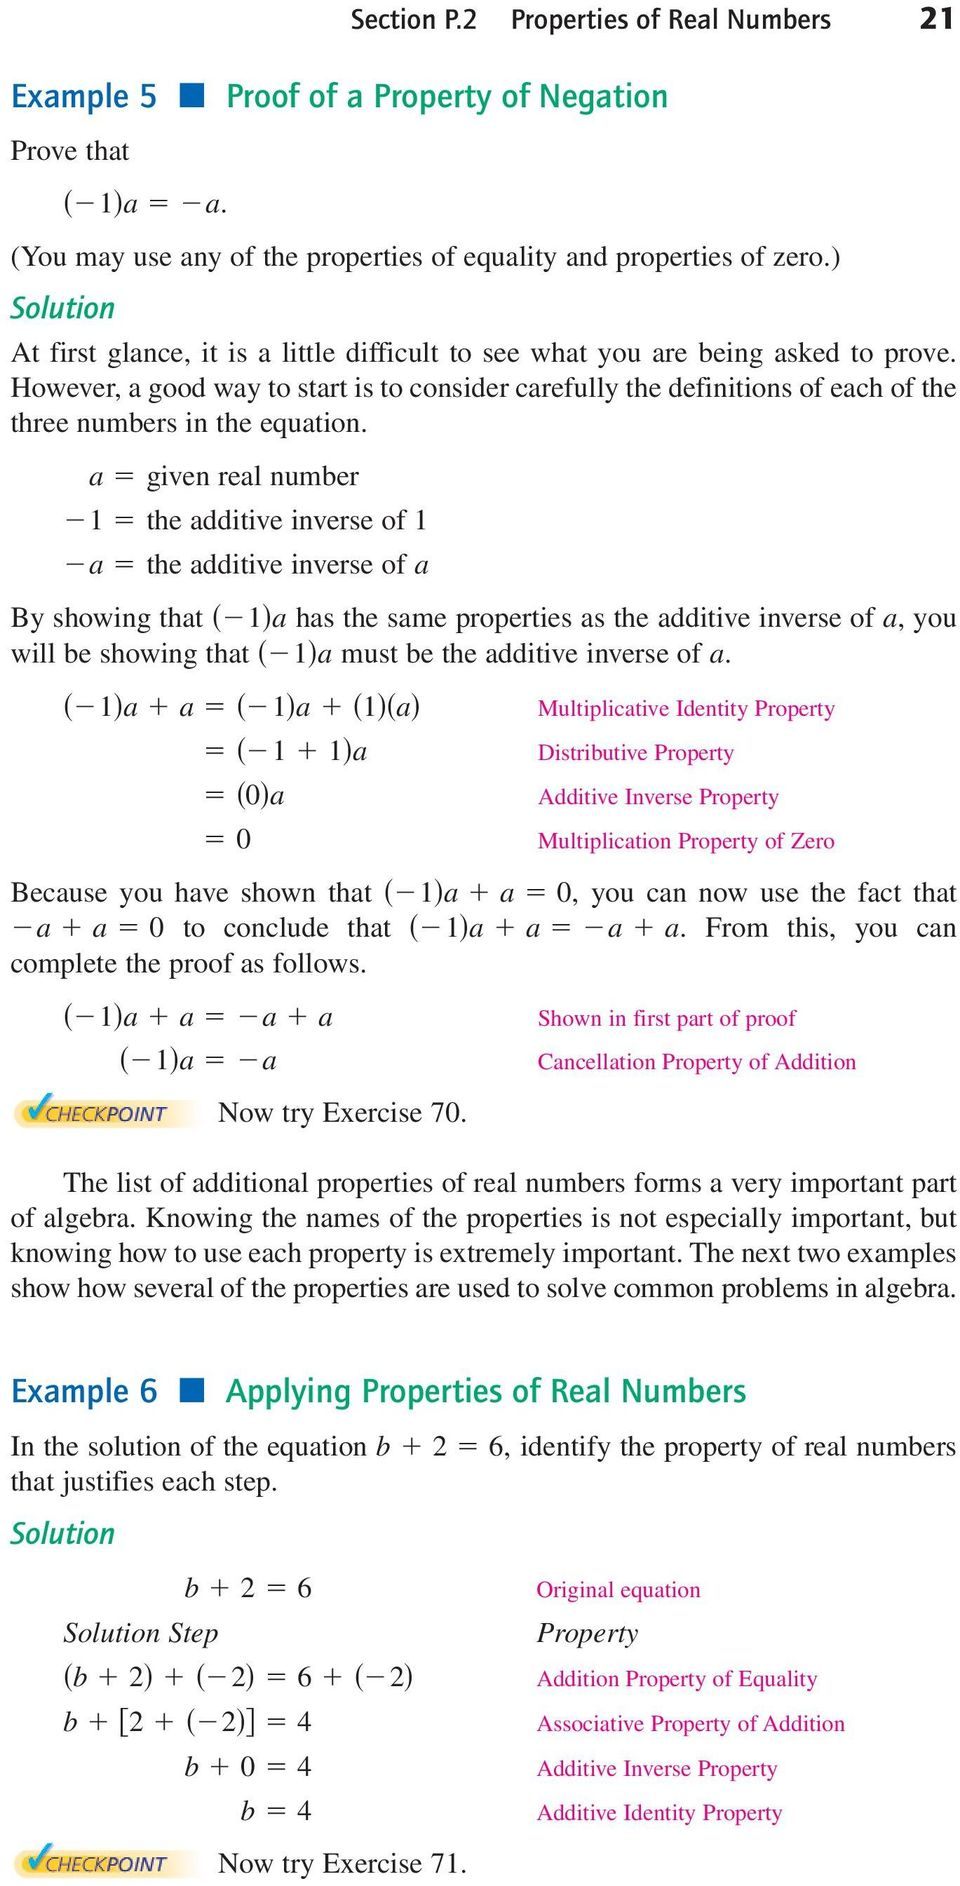 Properties of Real Numbers - PDF